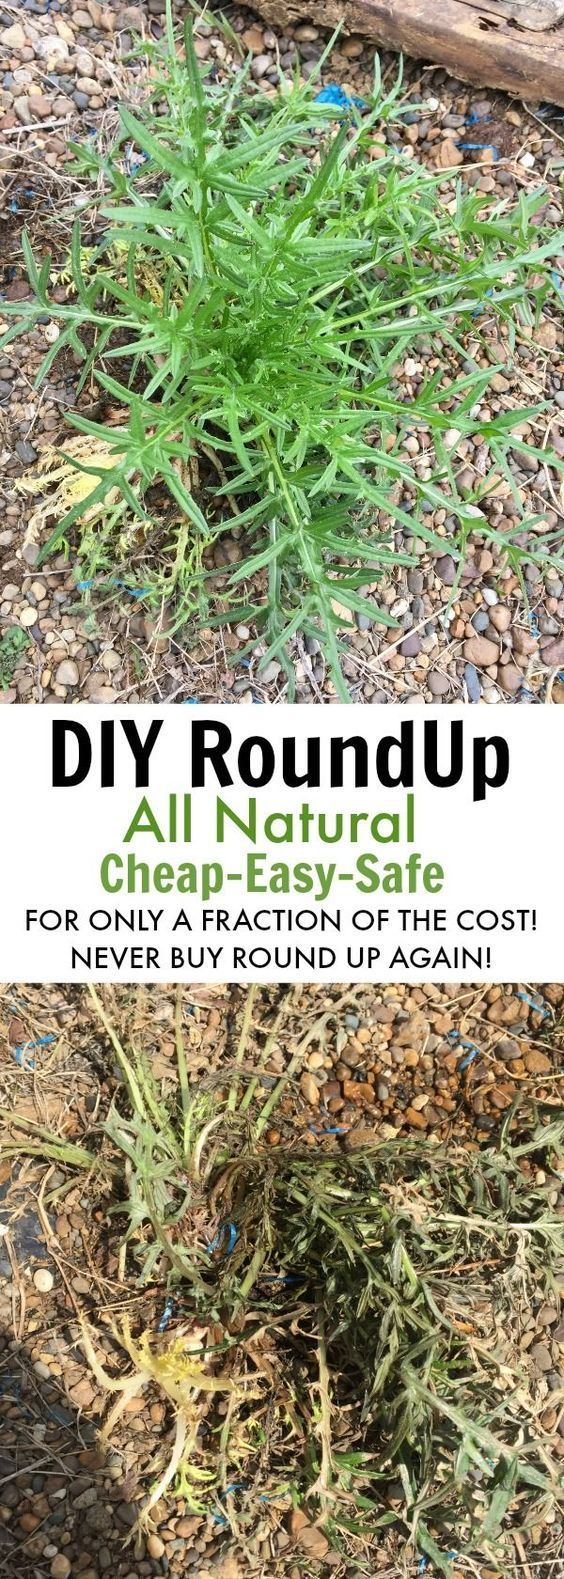 Better than roundup weed killer for a fraction of the cost weed